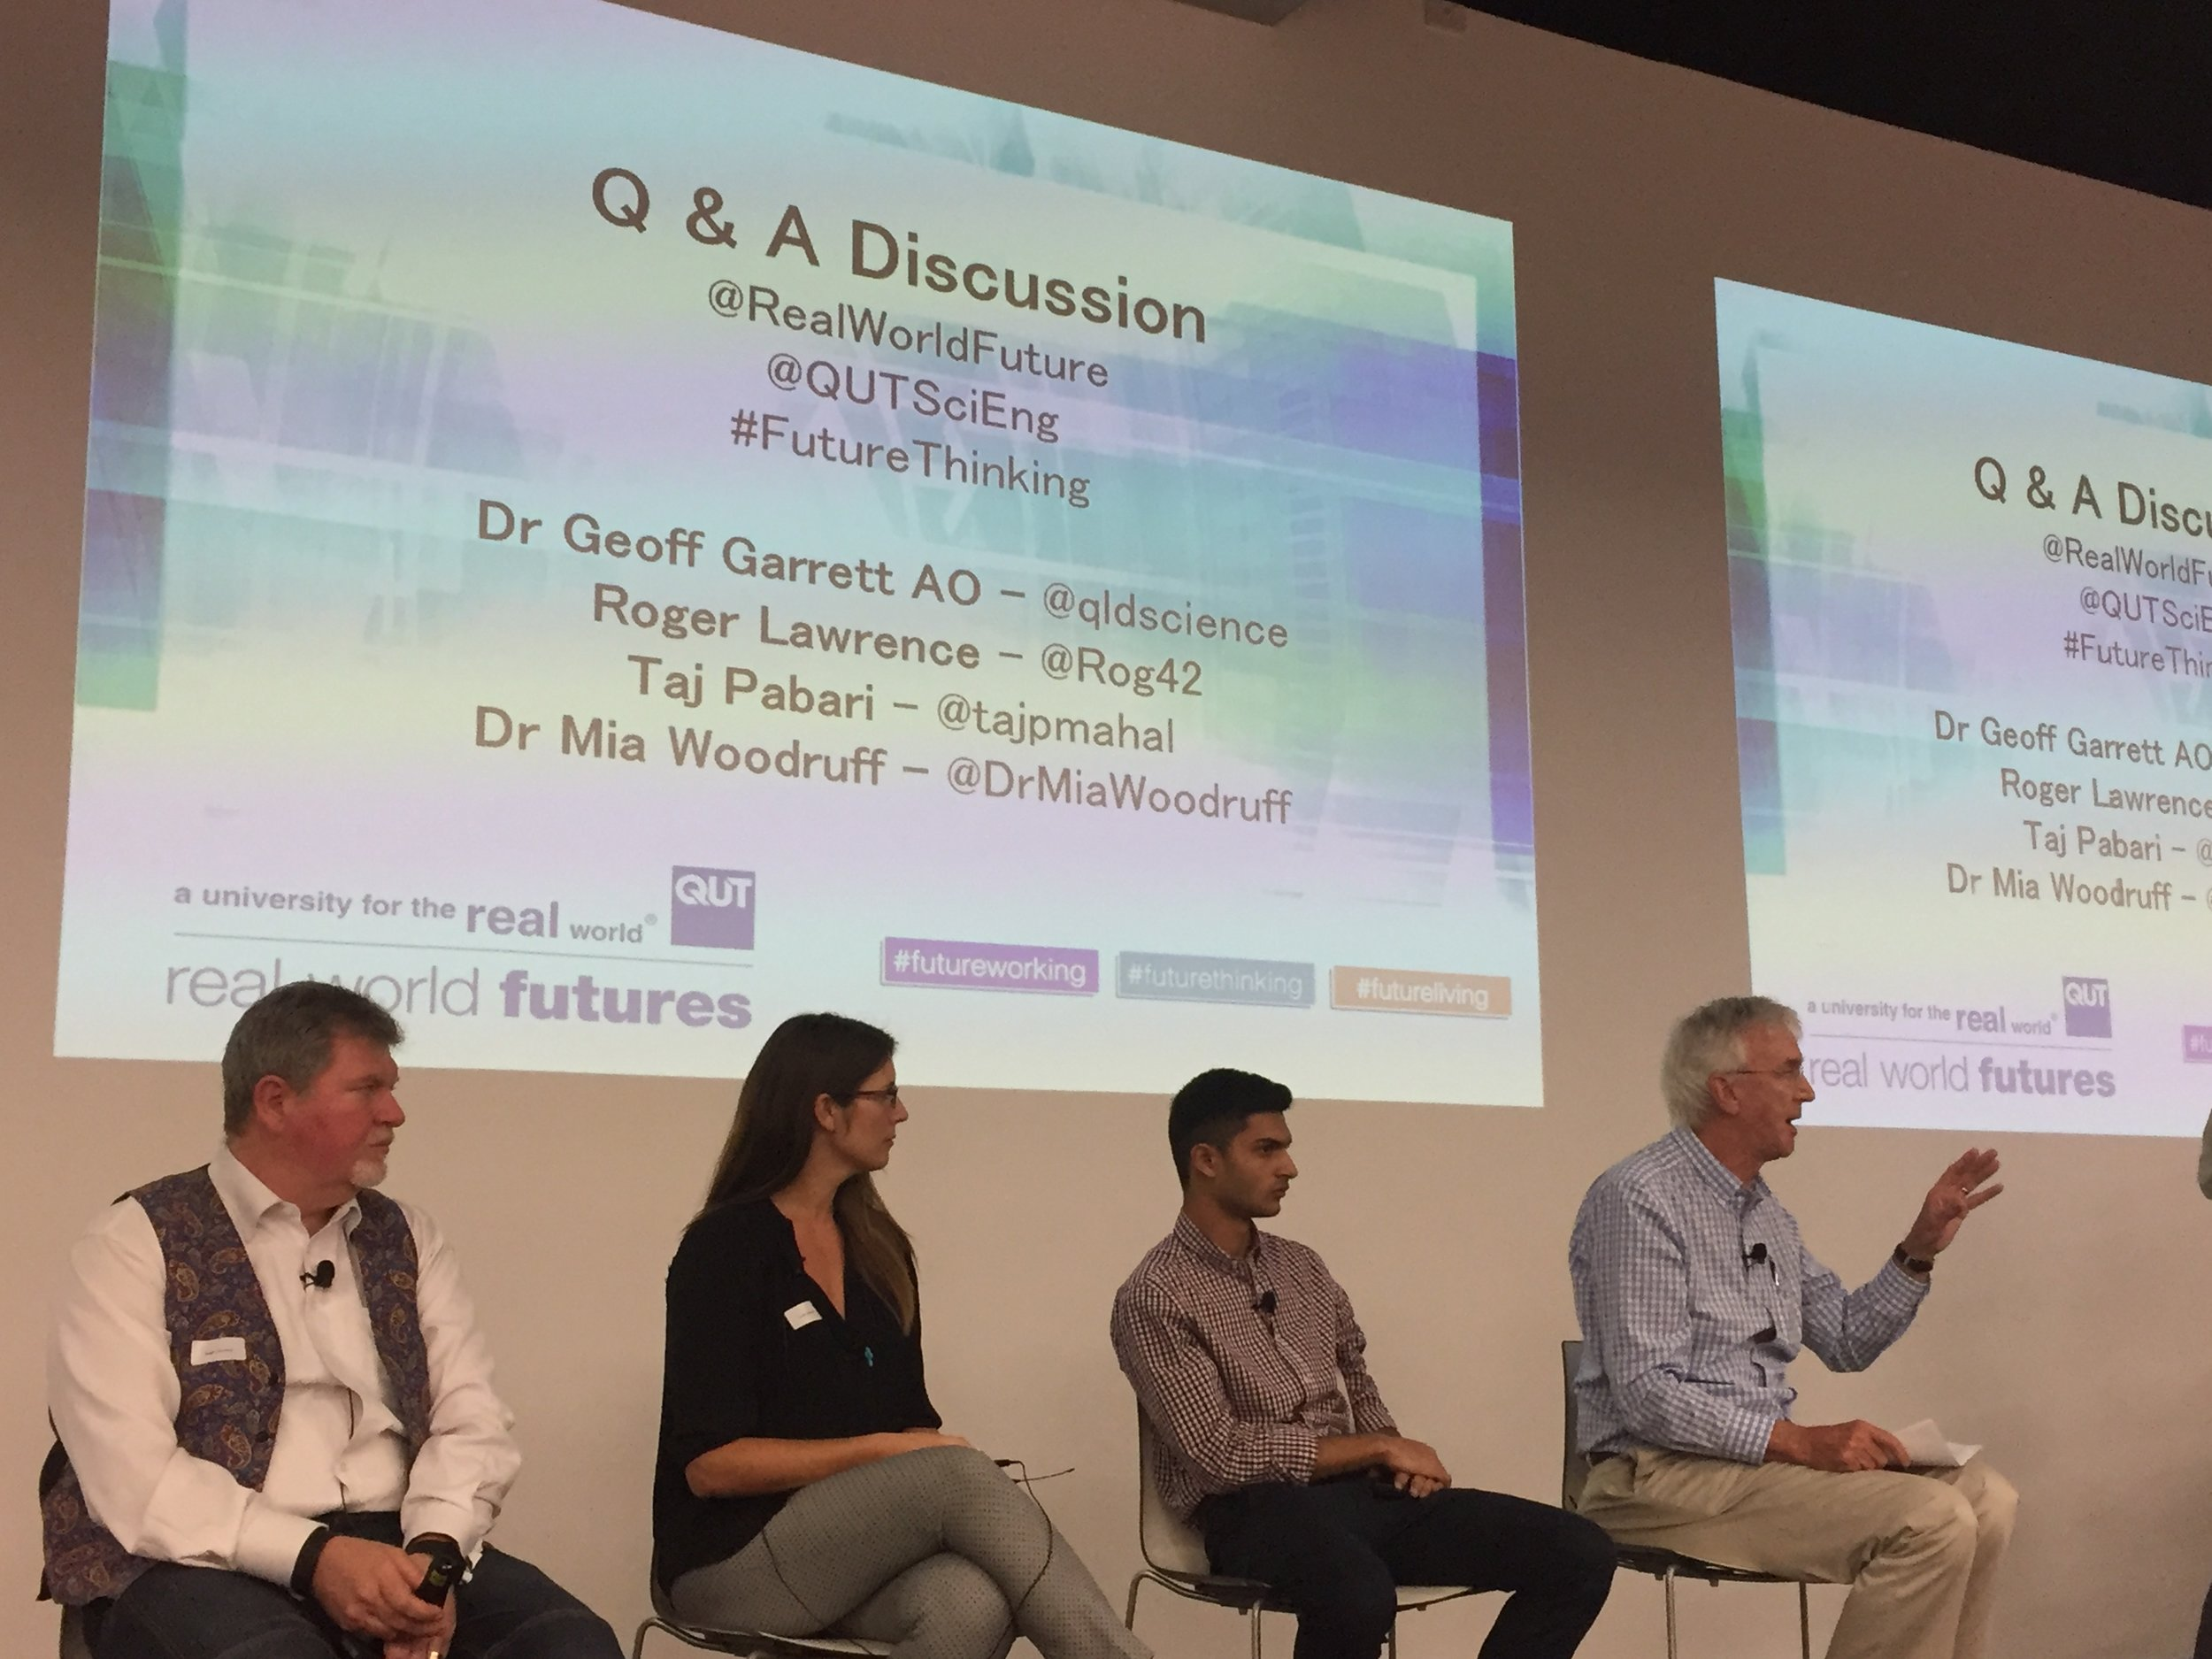 Day 1.Real World Futures Q&A with Roger Lawrence, Dr. Mia Woodruff, Taj Pabari and Dr. Geoff Garret AO.